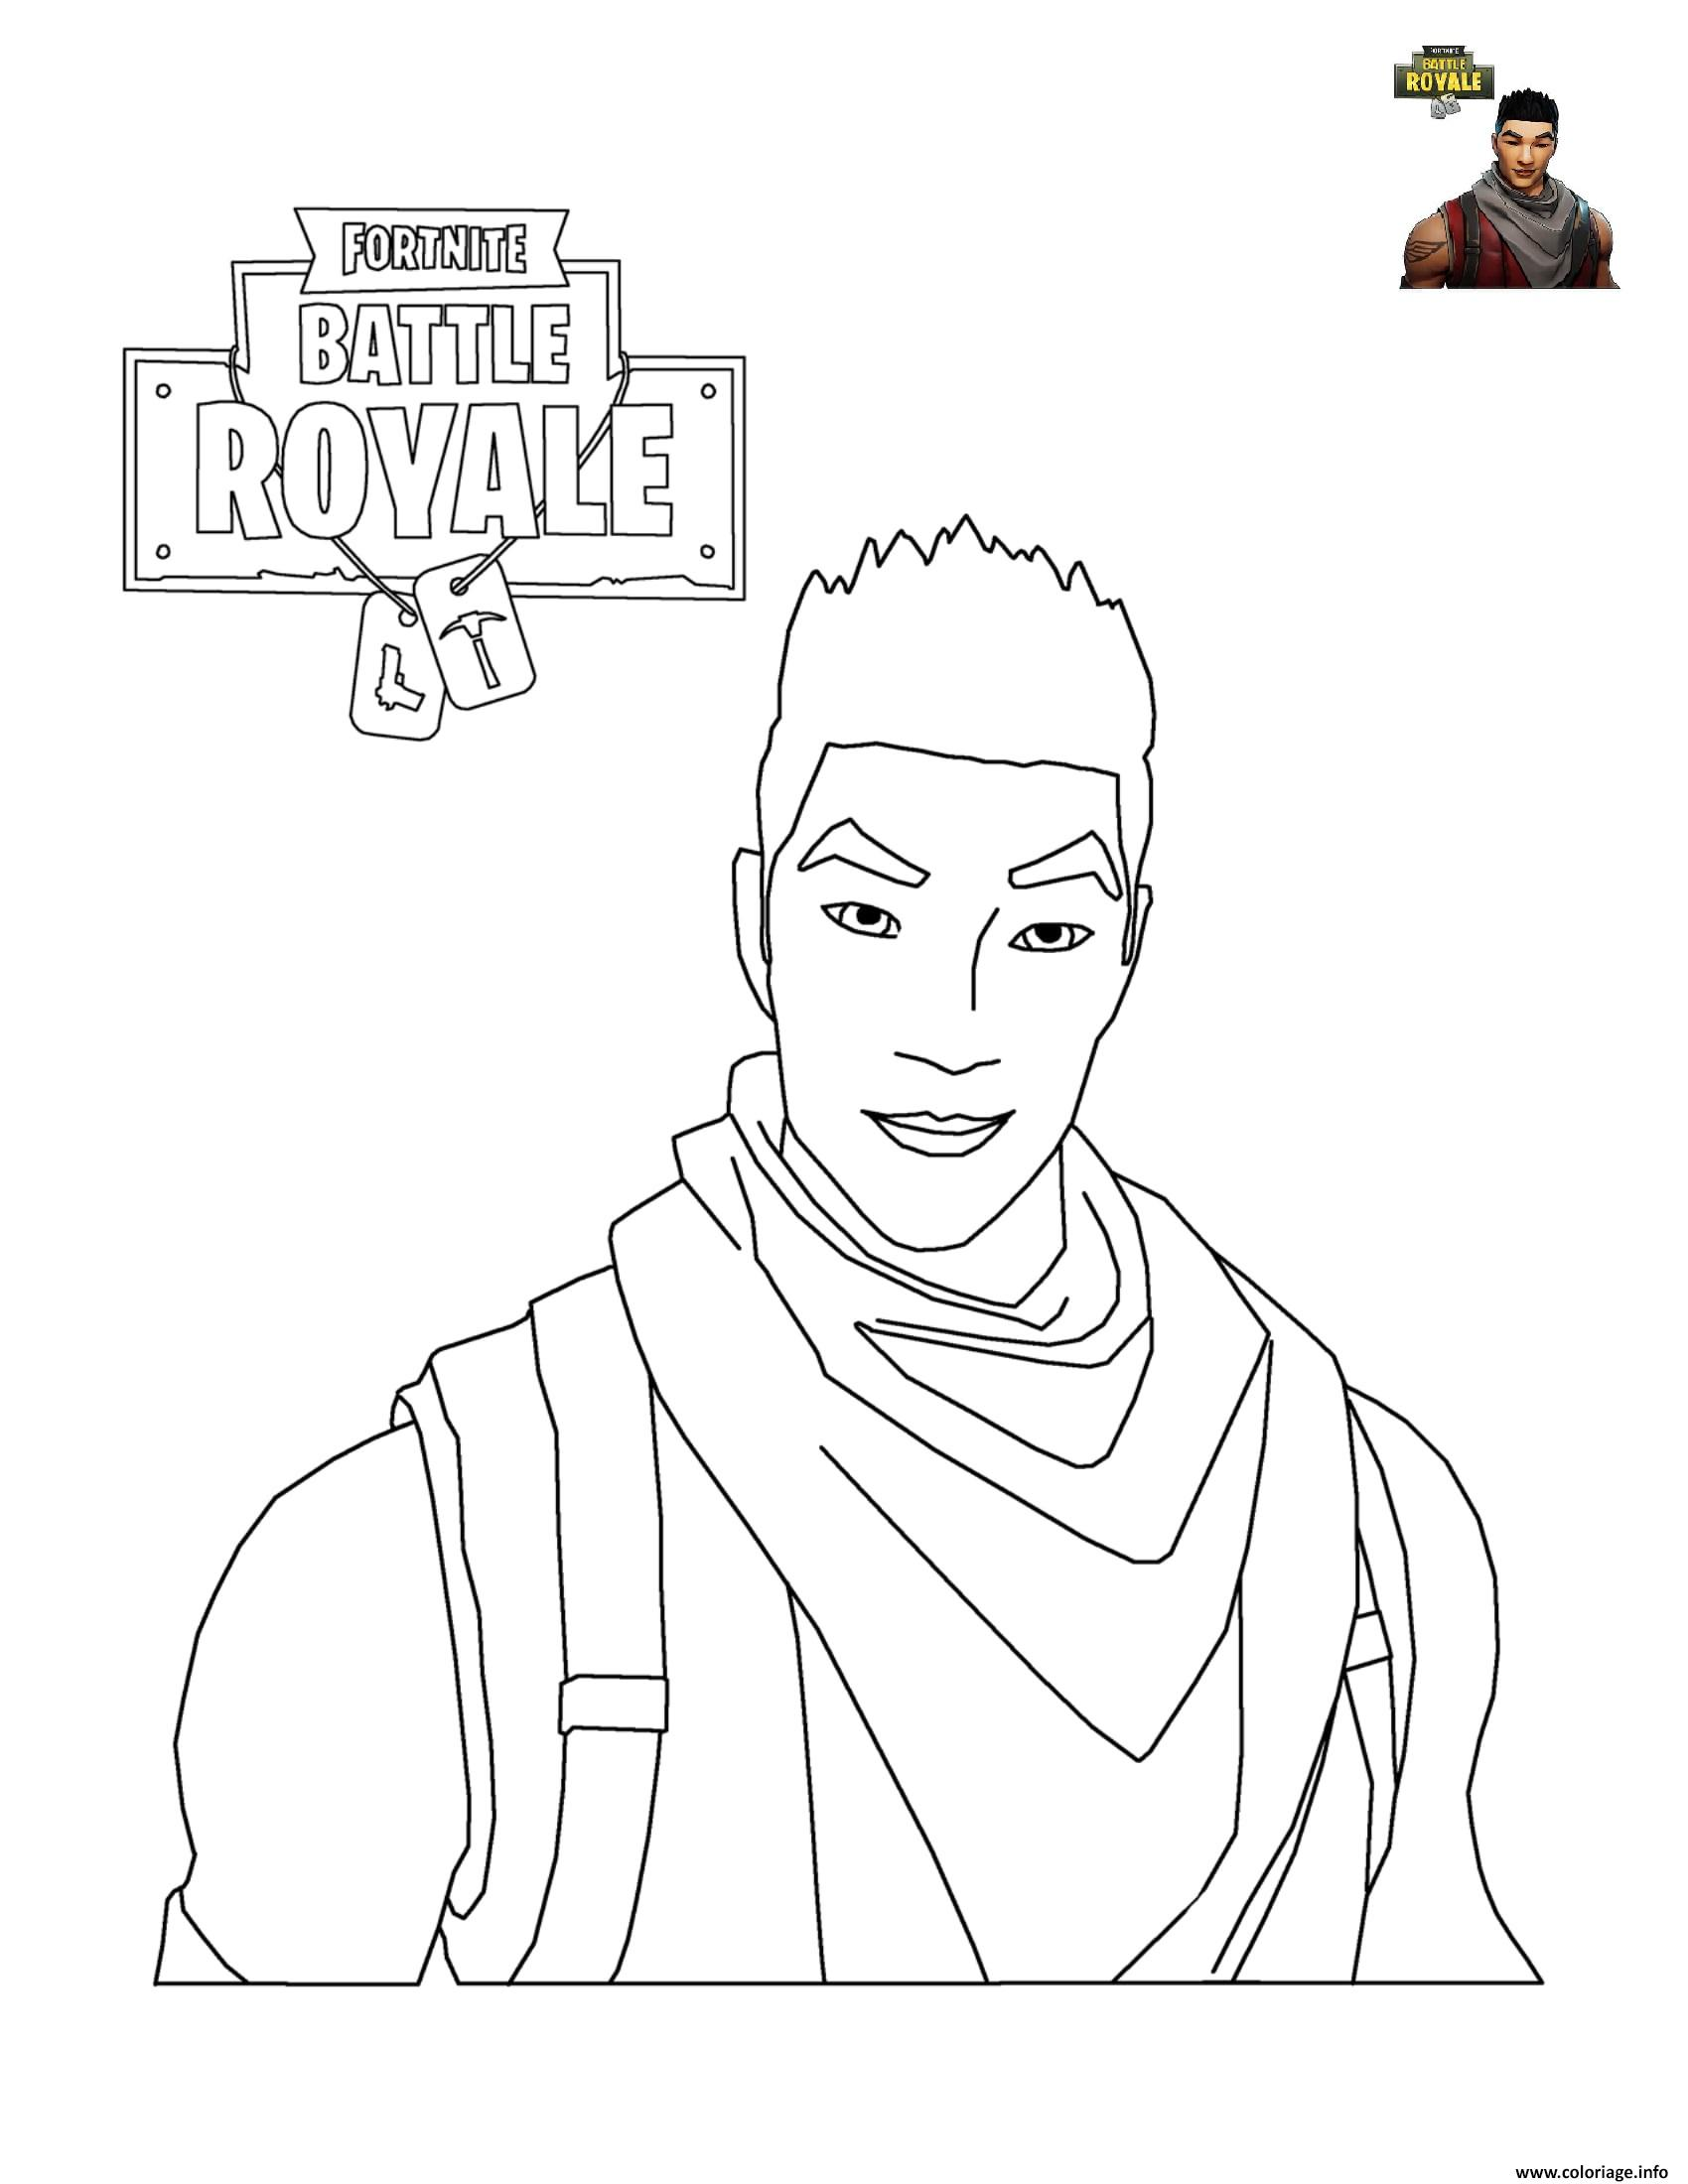 Coloriage A Imprimer Gratuit Fortnite.Coloriage Fortnite Battle Royale Personnage Dessin